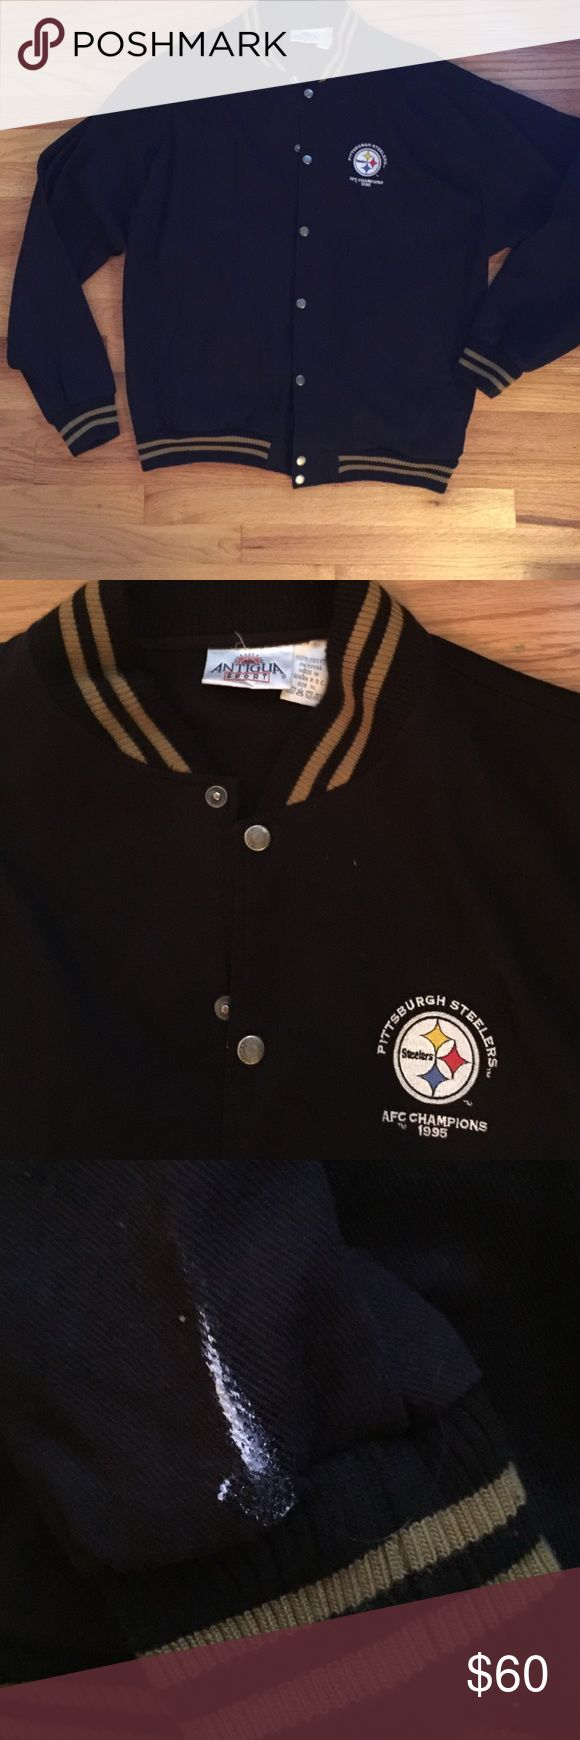 Vintage 1995 Super Bowl XXX Steeler Jacket Purchased at Super Bowl XXX. Men's size XL. 100% cotton twill. Brand is Antigua Sport.  What appears to be a paint smudge on right sleeve (pictured). Otherwise this is in great condition. Jackets & Coats Bomber & Varsity